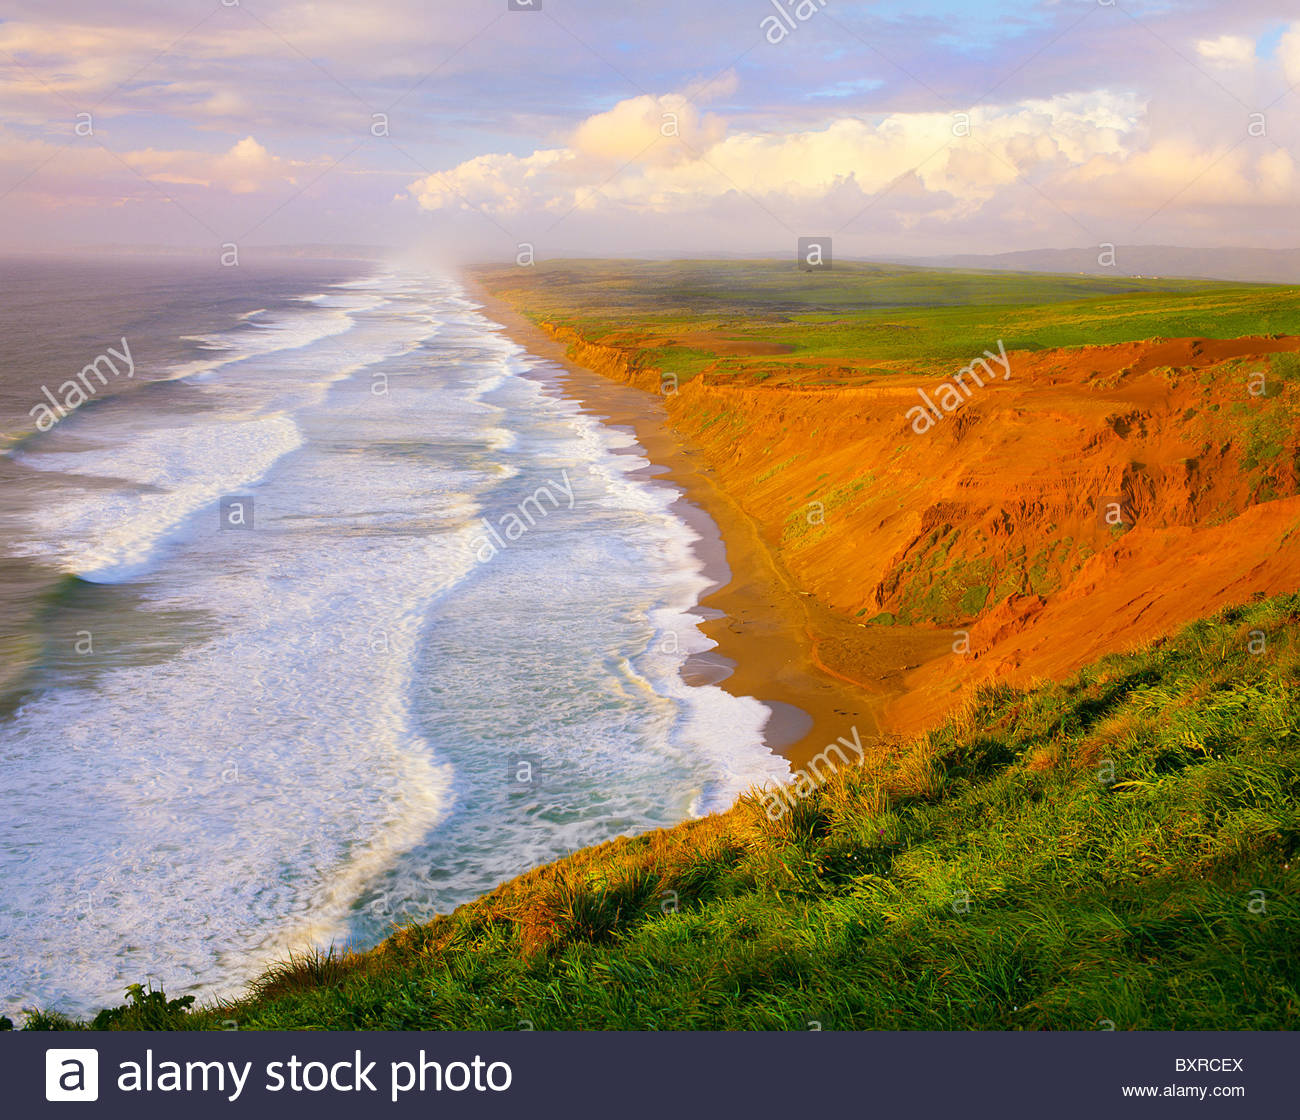 0608-1011B  Copyright: George H. H. Huey  North and South Beaches. Point Reyes National Seashore, California. - Stock Image